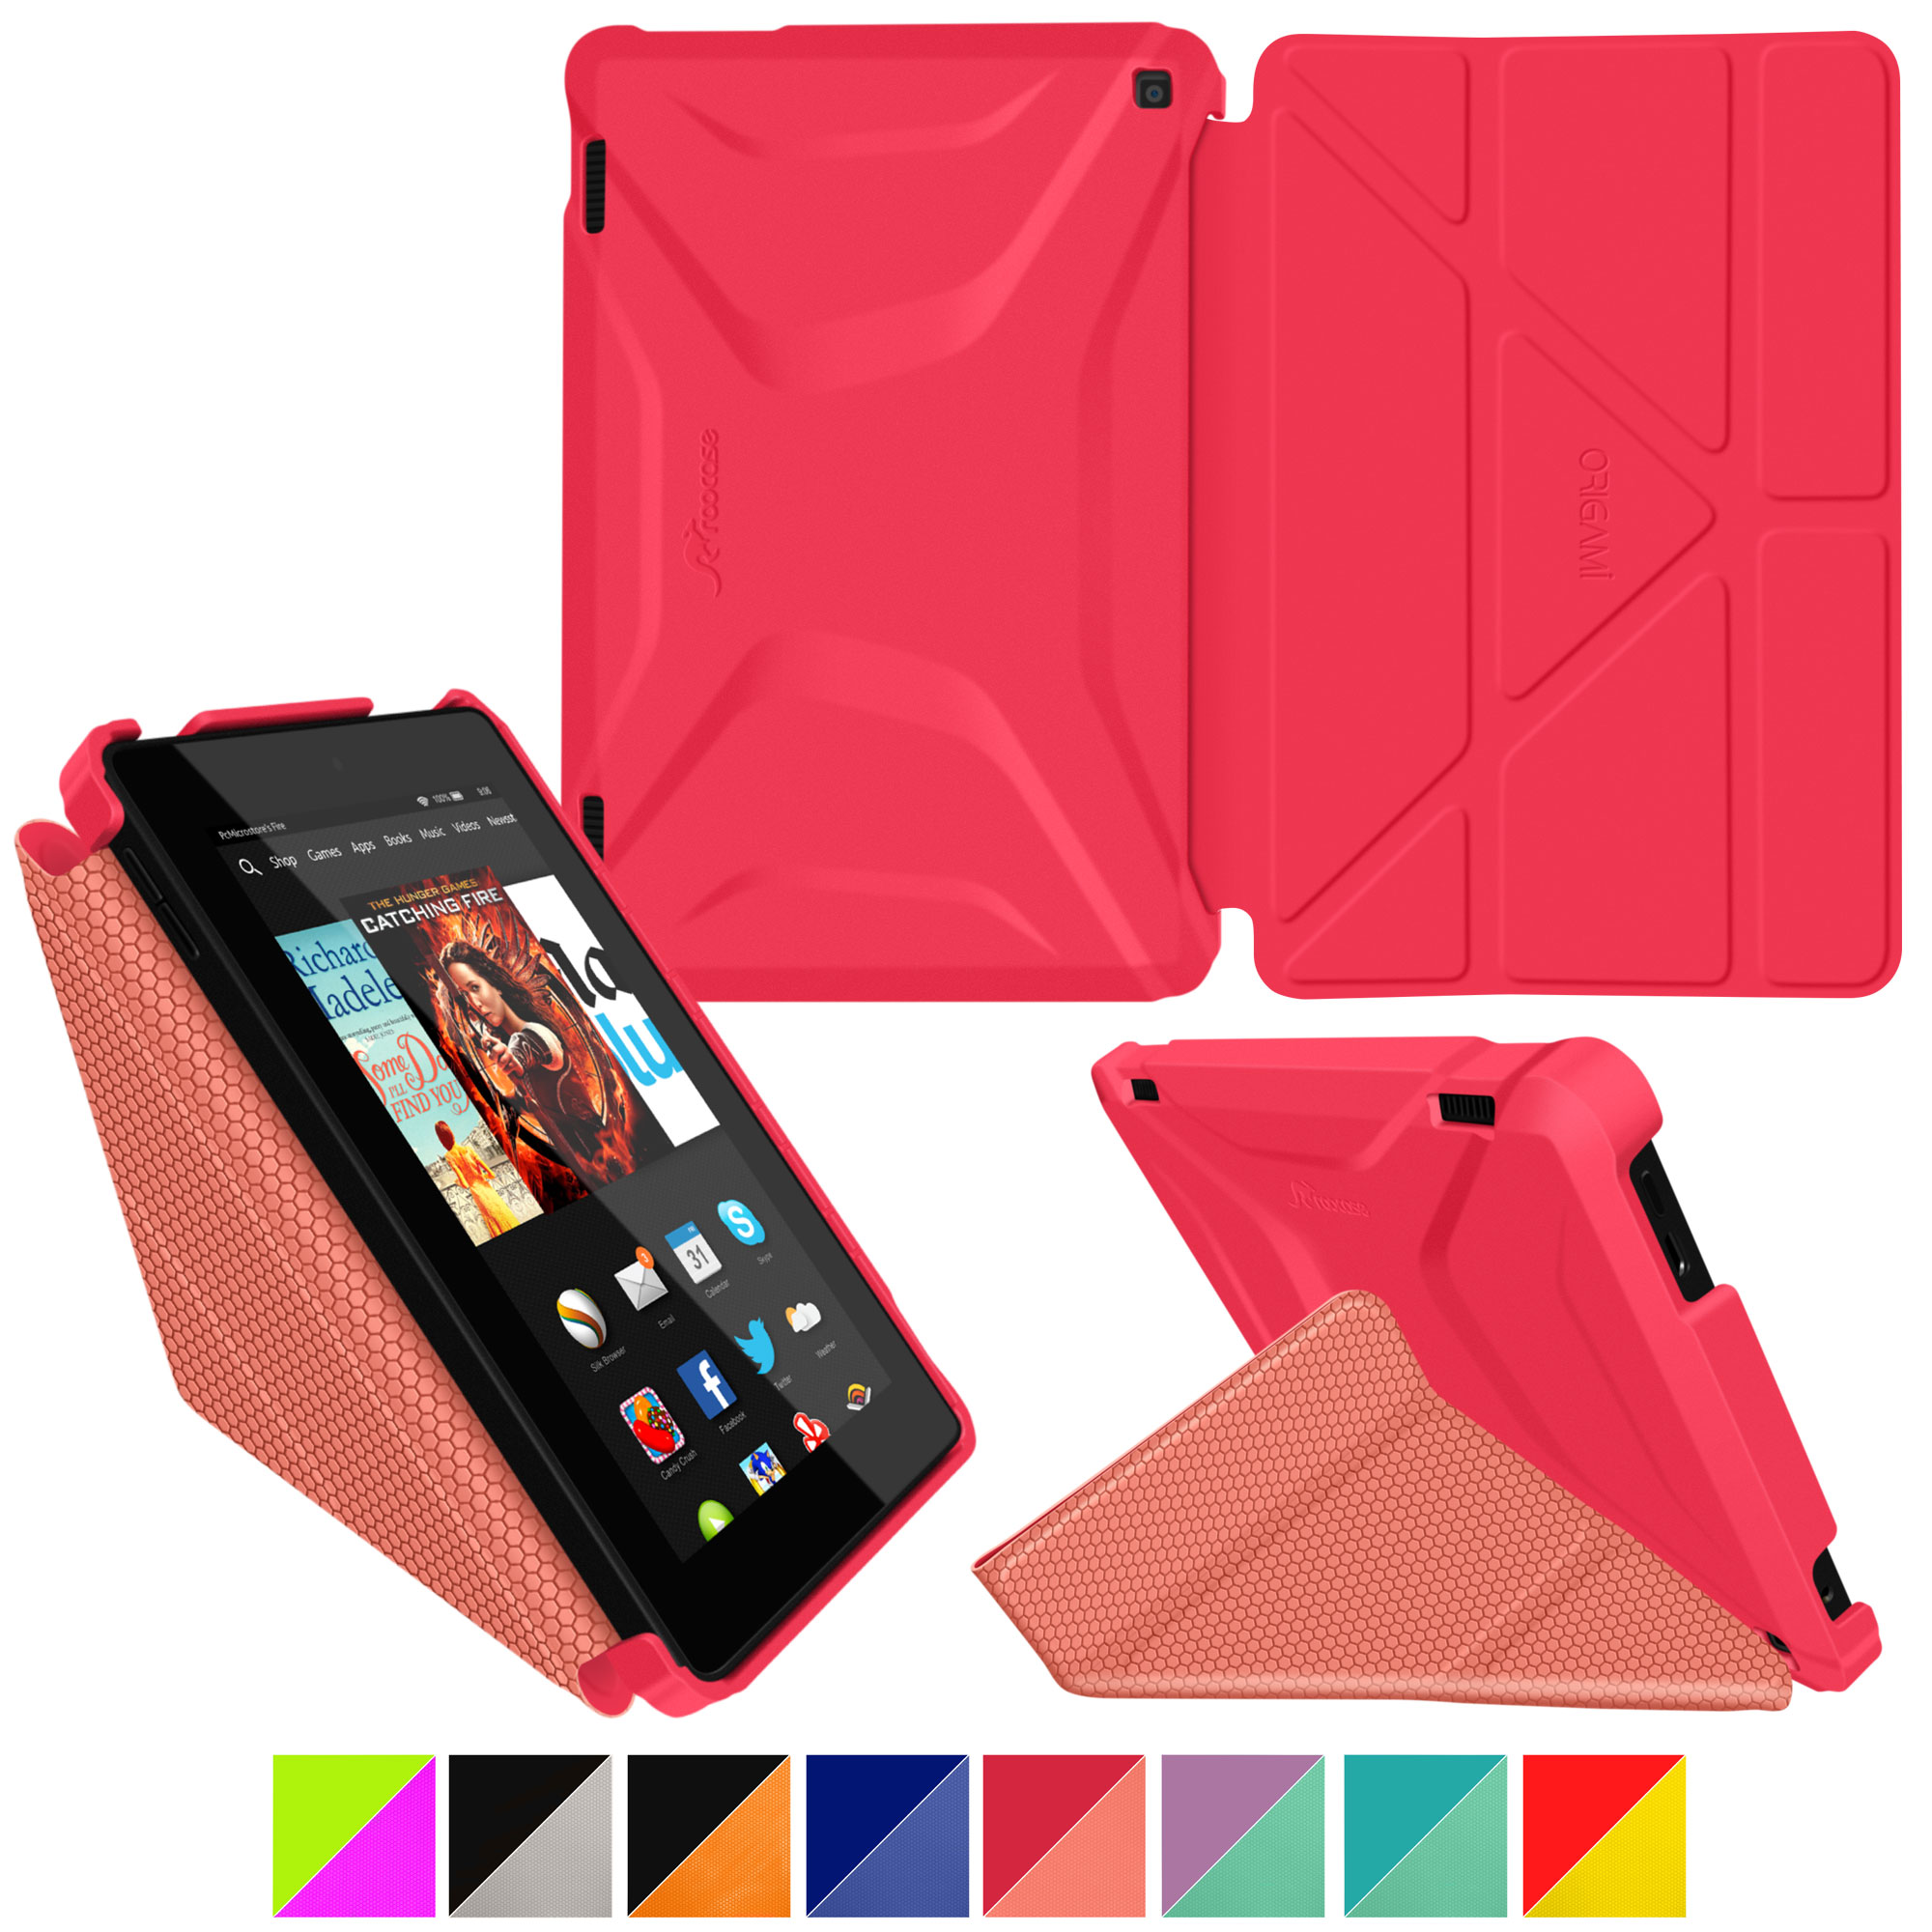 Fire HD 7 (2014) Case, roocase new Kindle Fire HD 7 Origami 3D Slim Shell Case with Sleep / Wake Smart Cover for All-New 2014 Fire HD 7 Tablet (4th Generation)